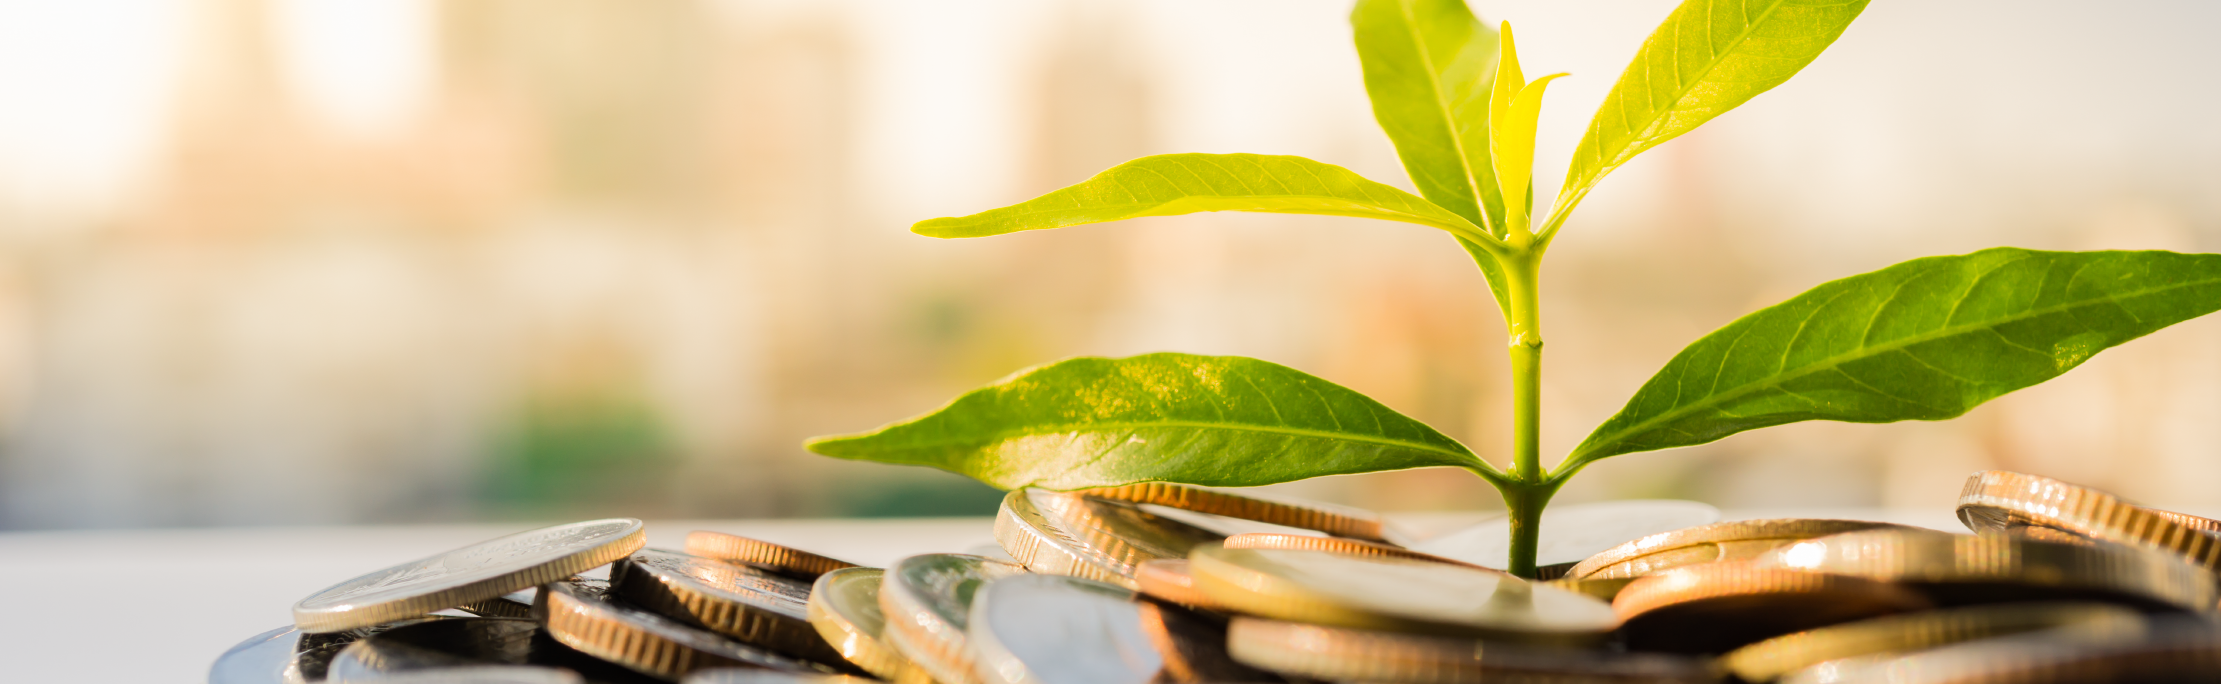 2019 Financial Regulation Conference: Sustainable Green Finance